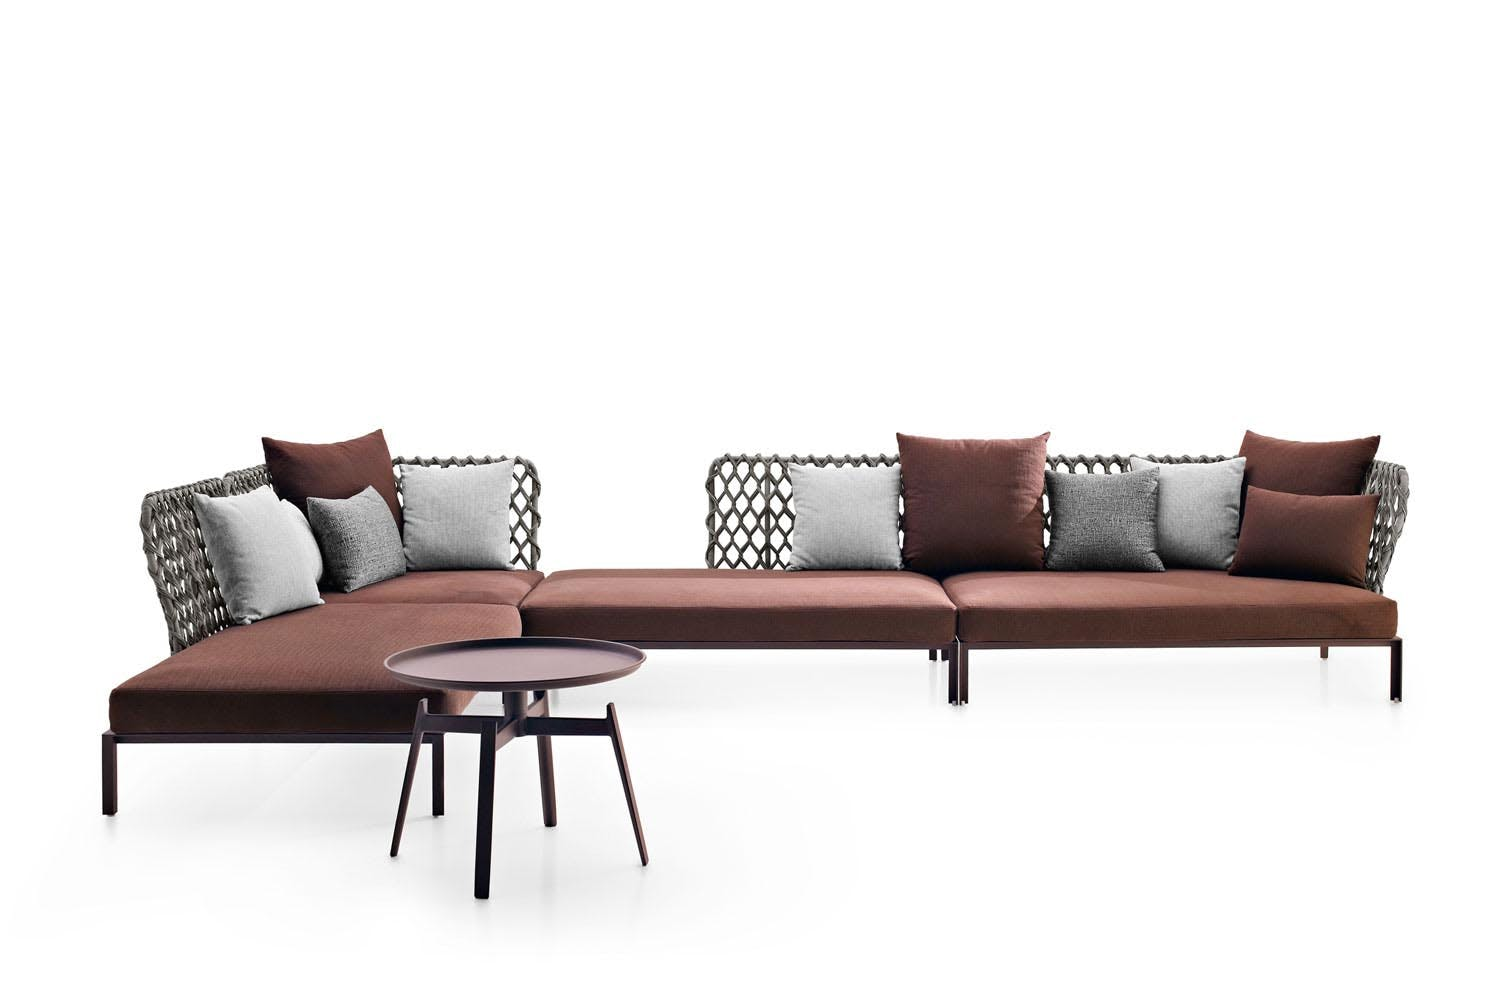 ravel sofa by patricia urquiola for b b italia space. Black Bedroom Furniture Sets. Home Design Ideas